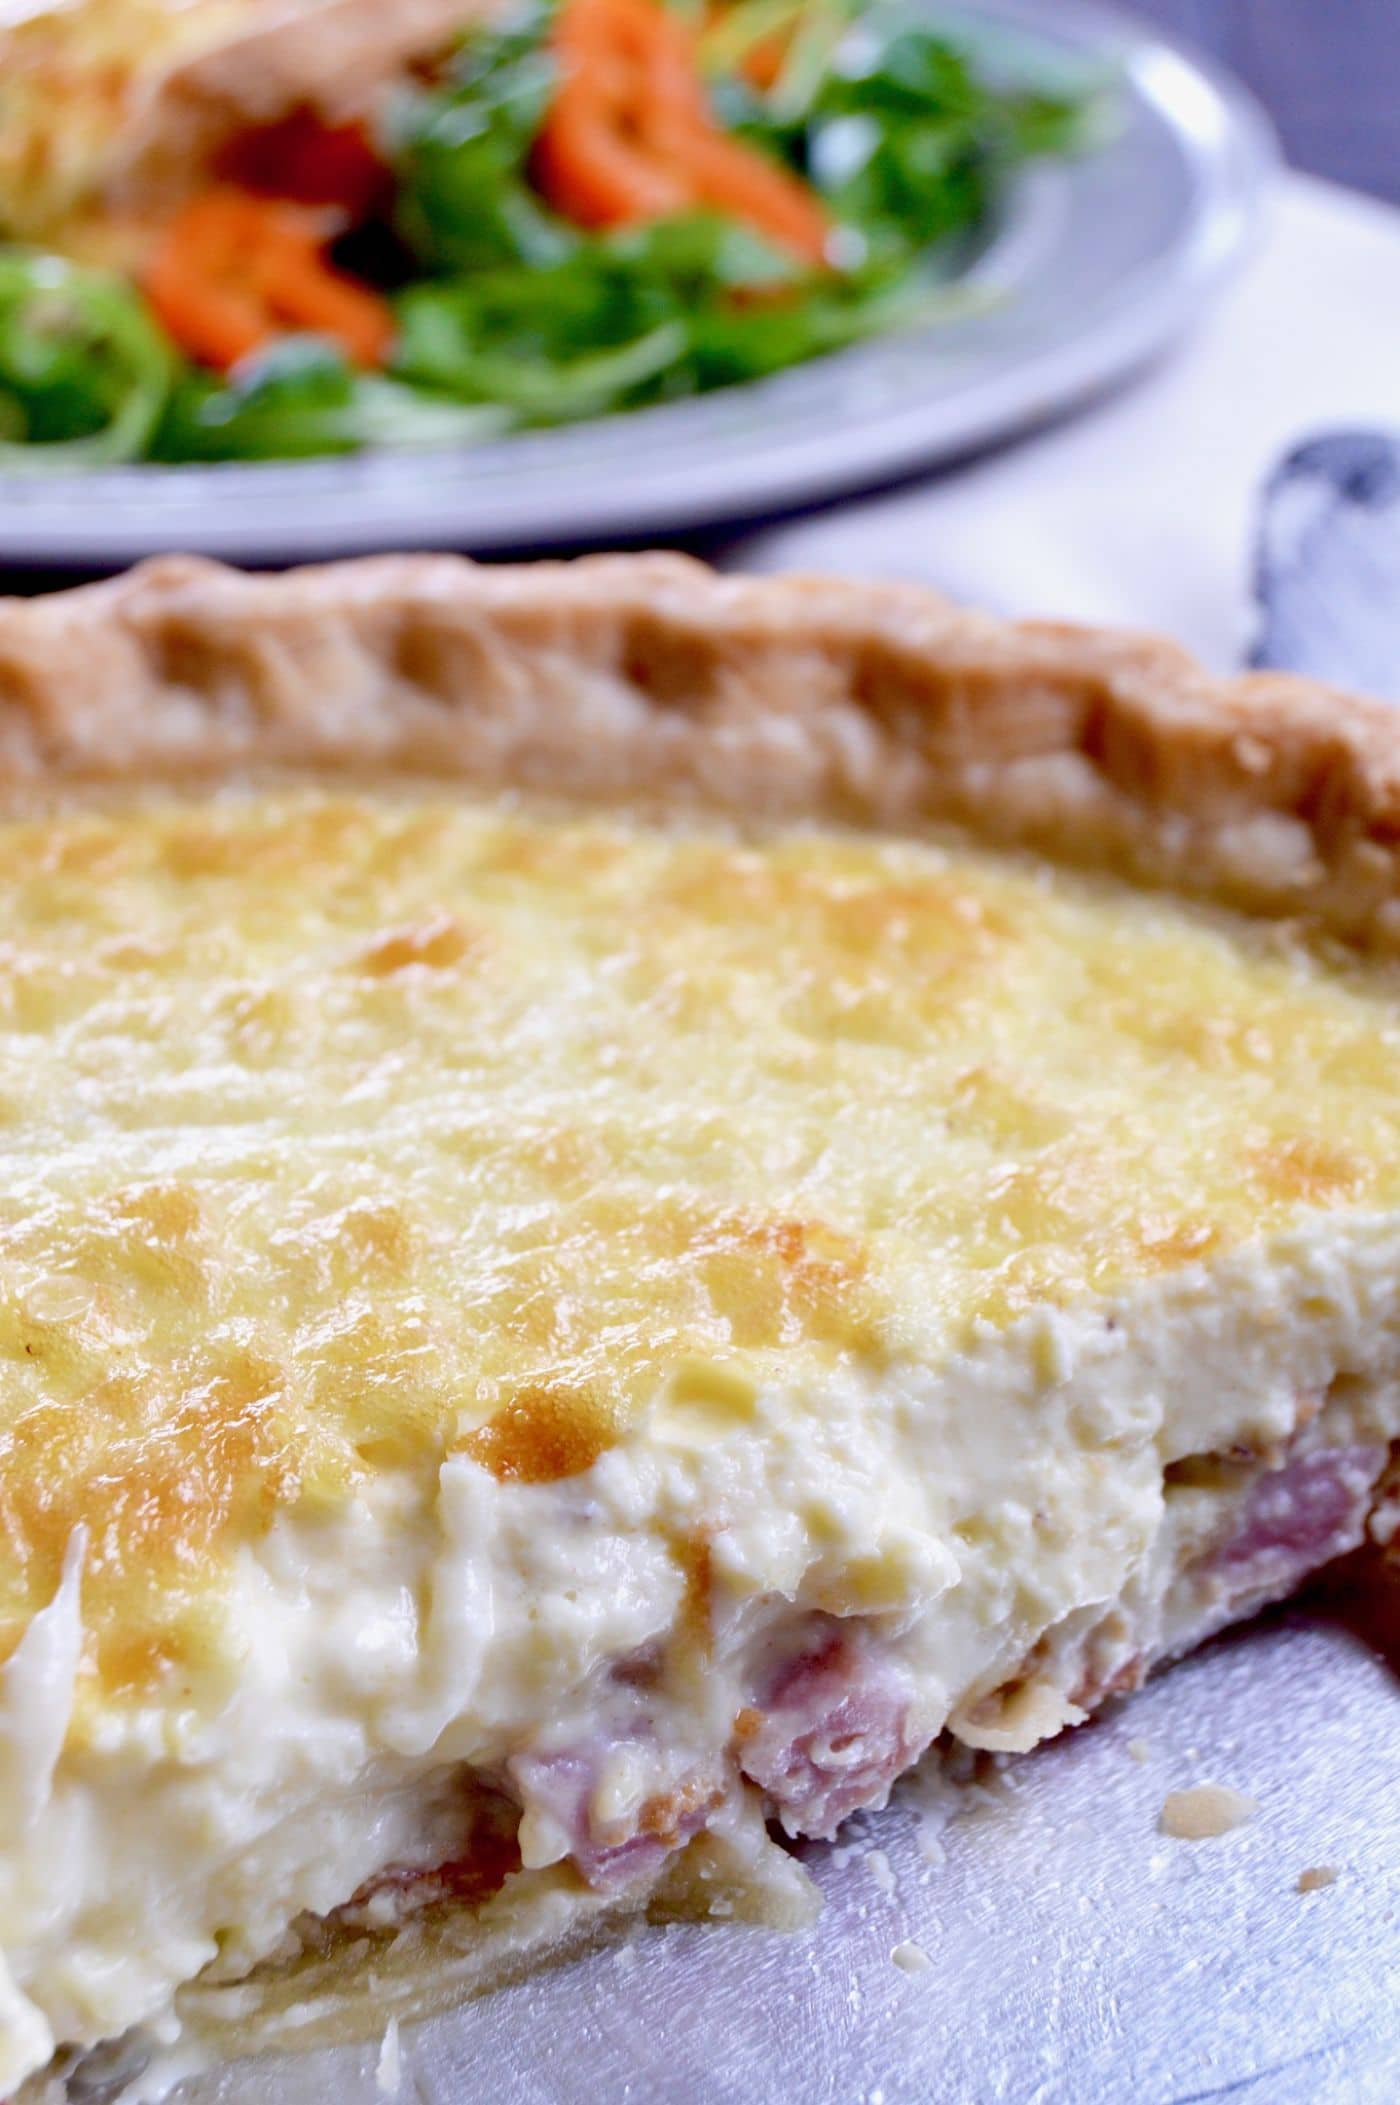 No Fail Quiche Lorraine (shown here with the stand up custard), an easy yet impressive recipe full of melty cheese, crisped bacon and ham mixed in a light creamy custard in a flaky buttery crust.